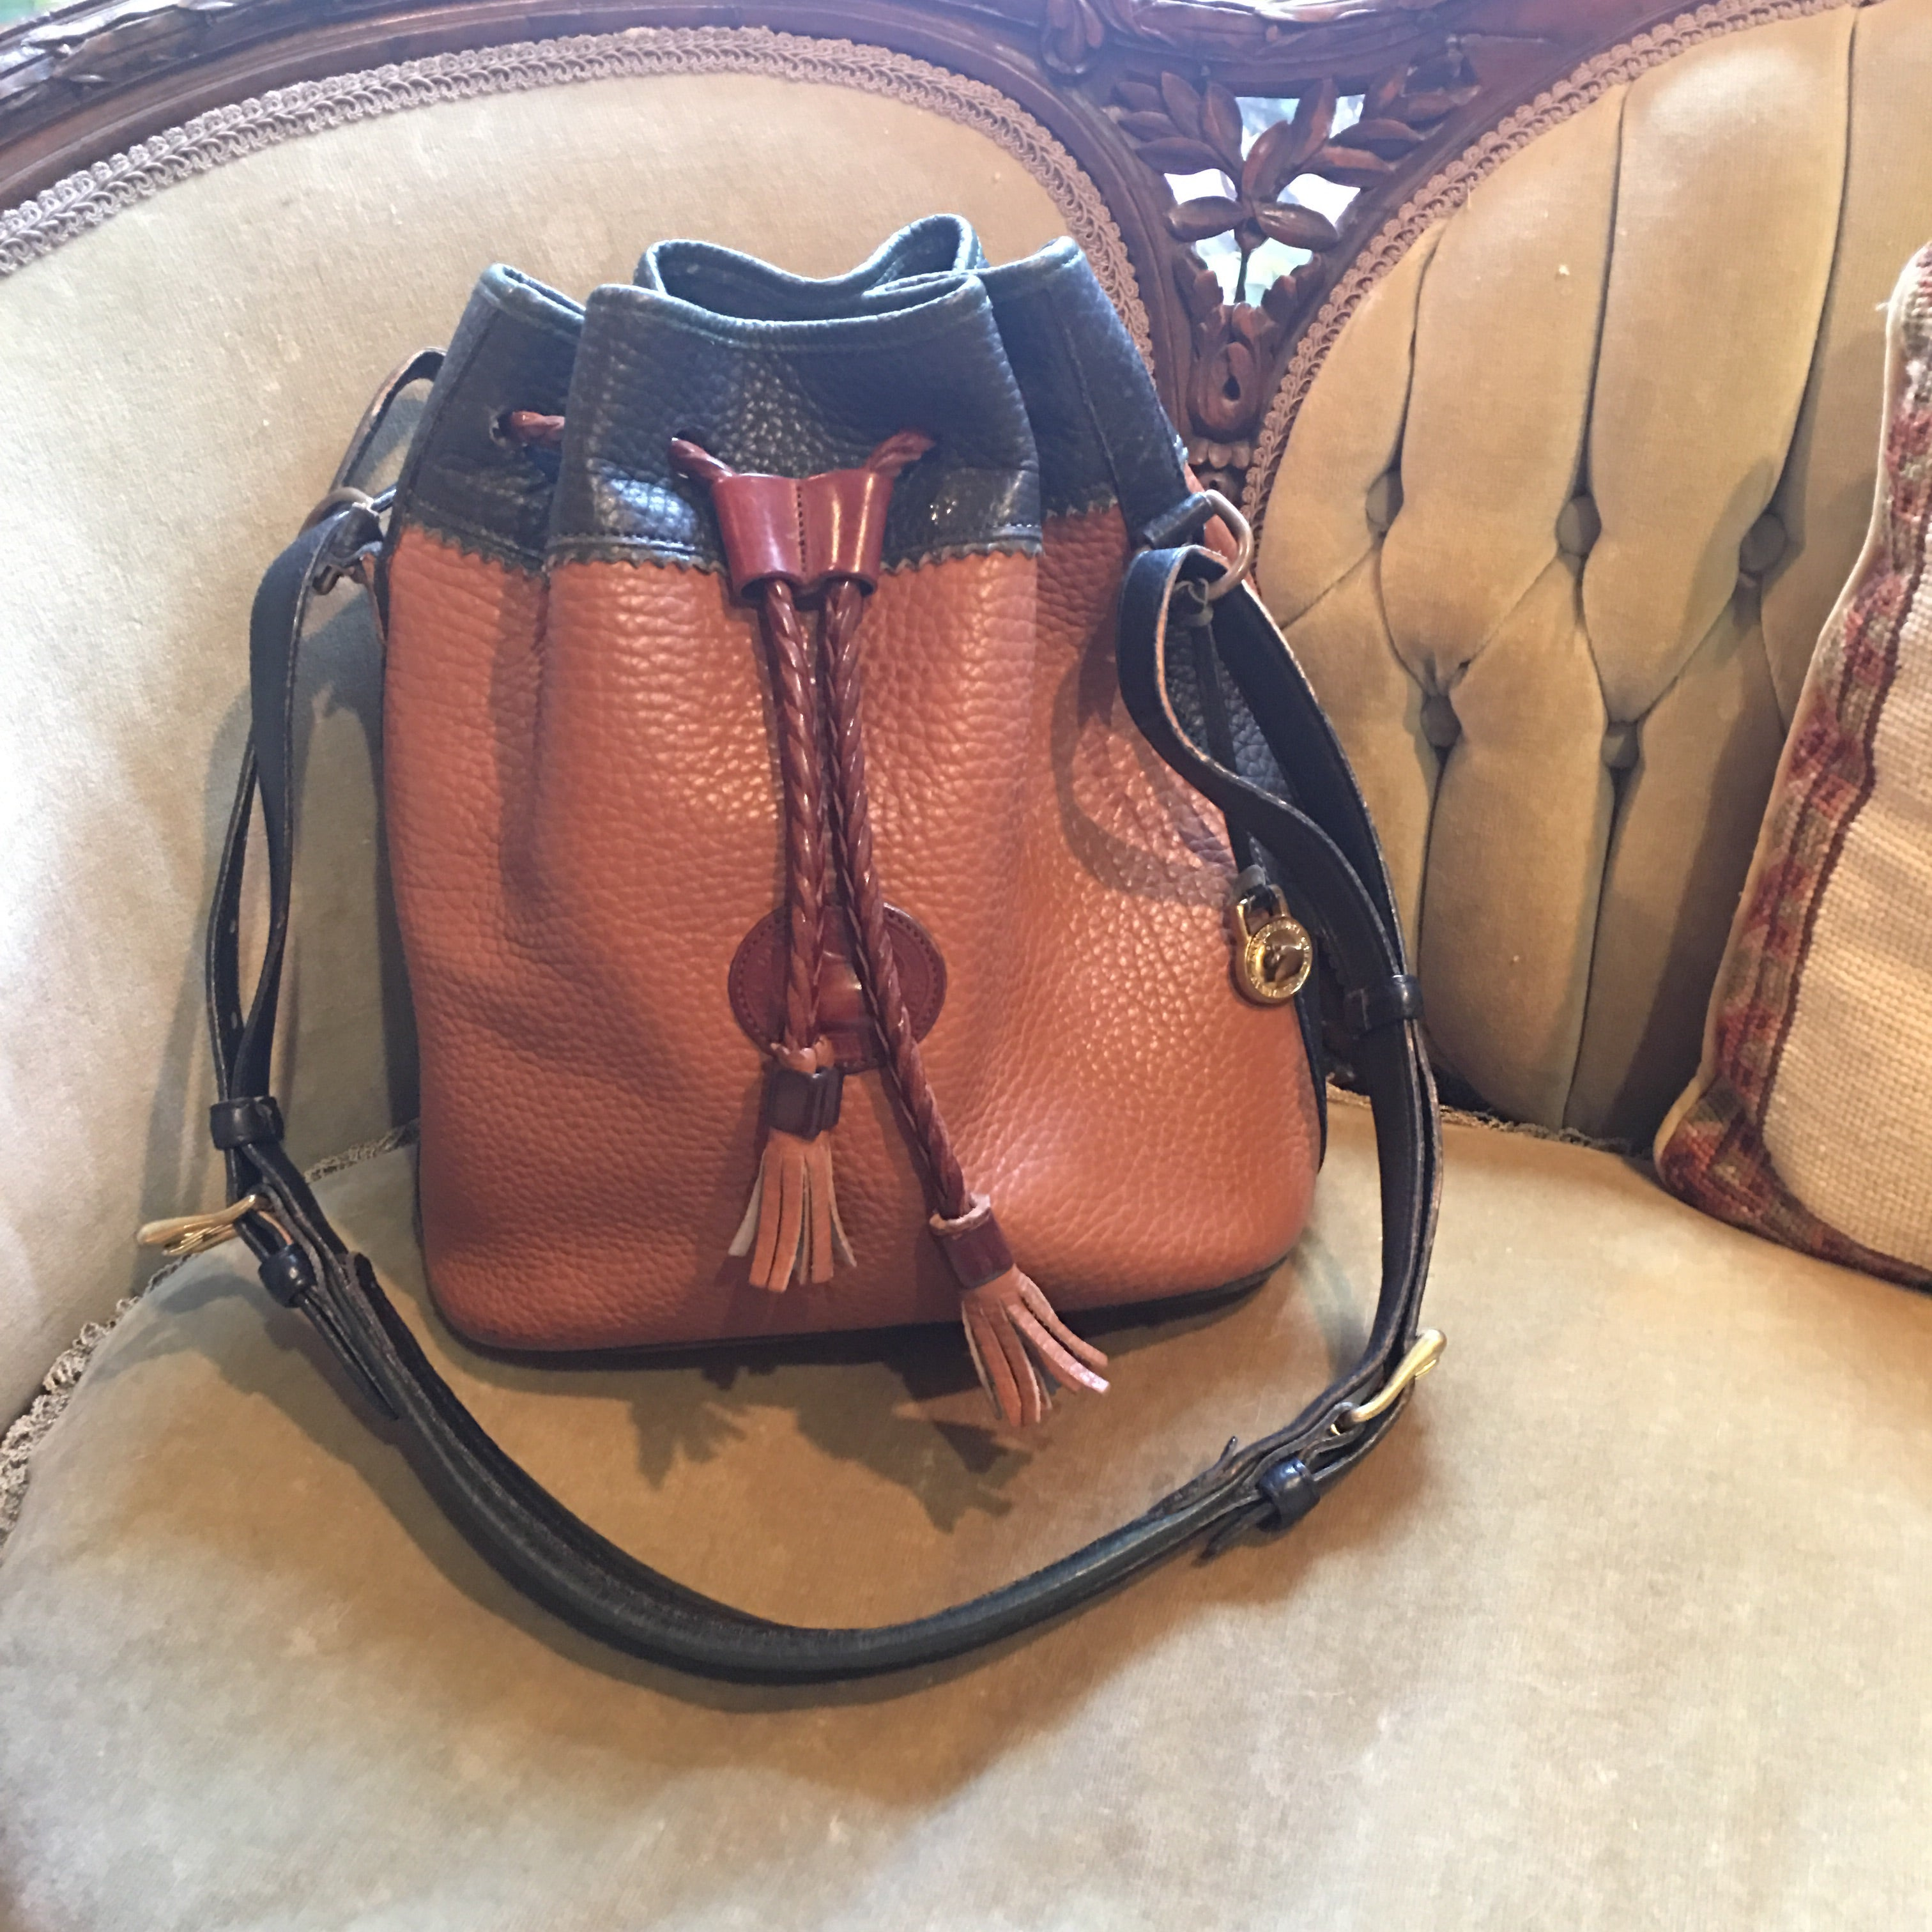 Vintage Dooney & Bourke Bucket Bag